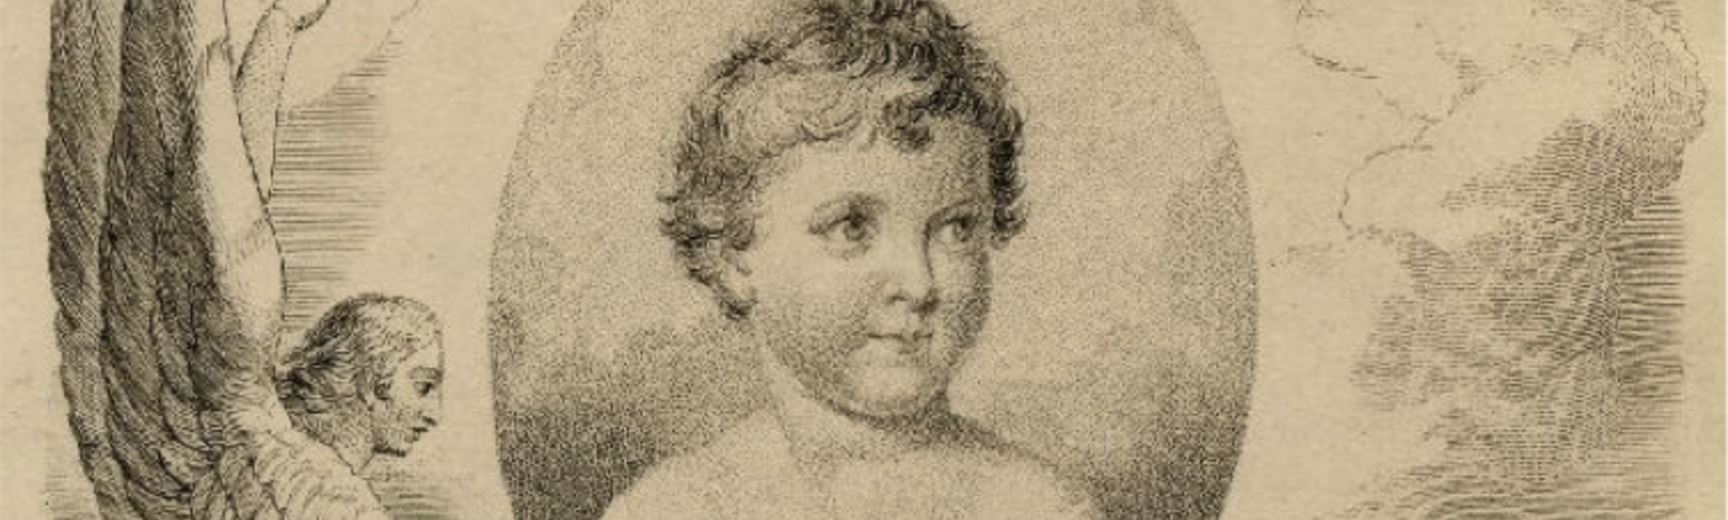 Blake engraving of children and childhood